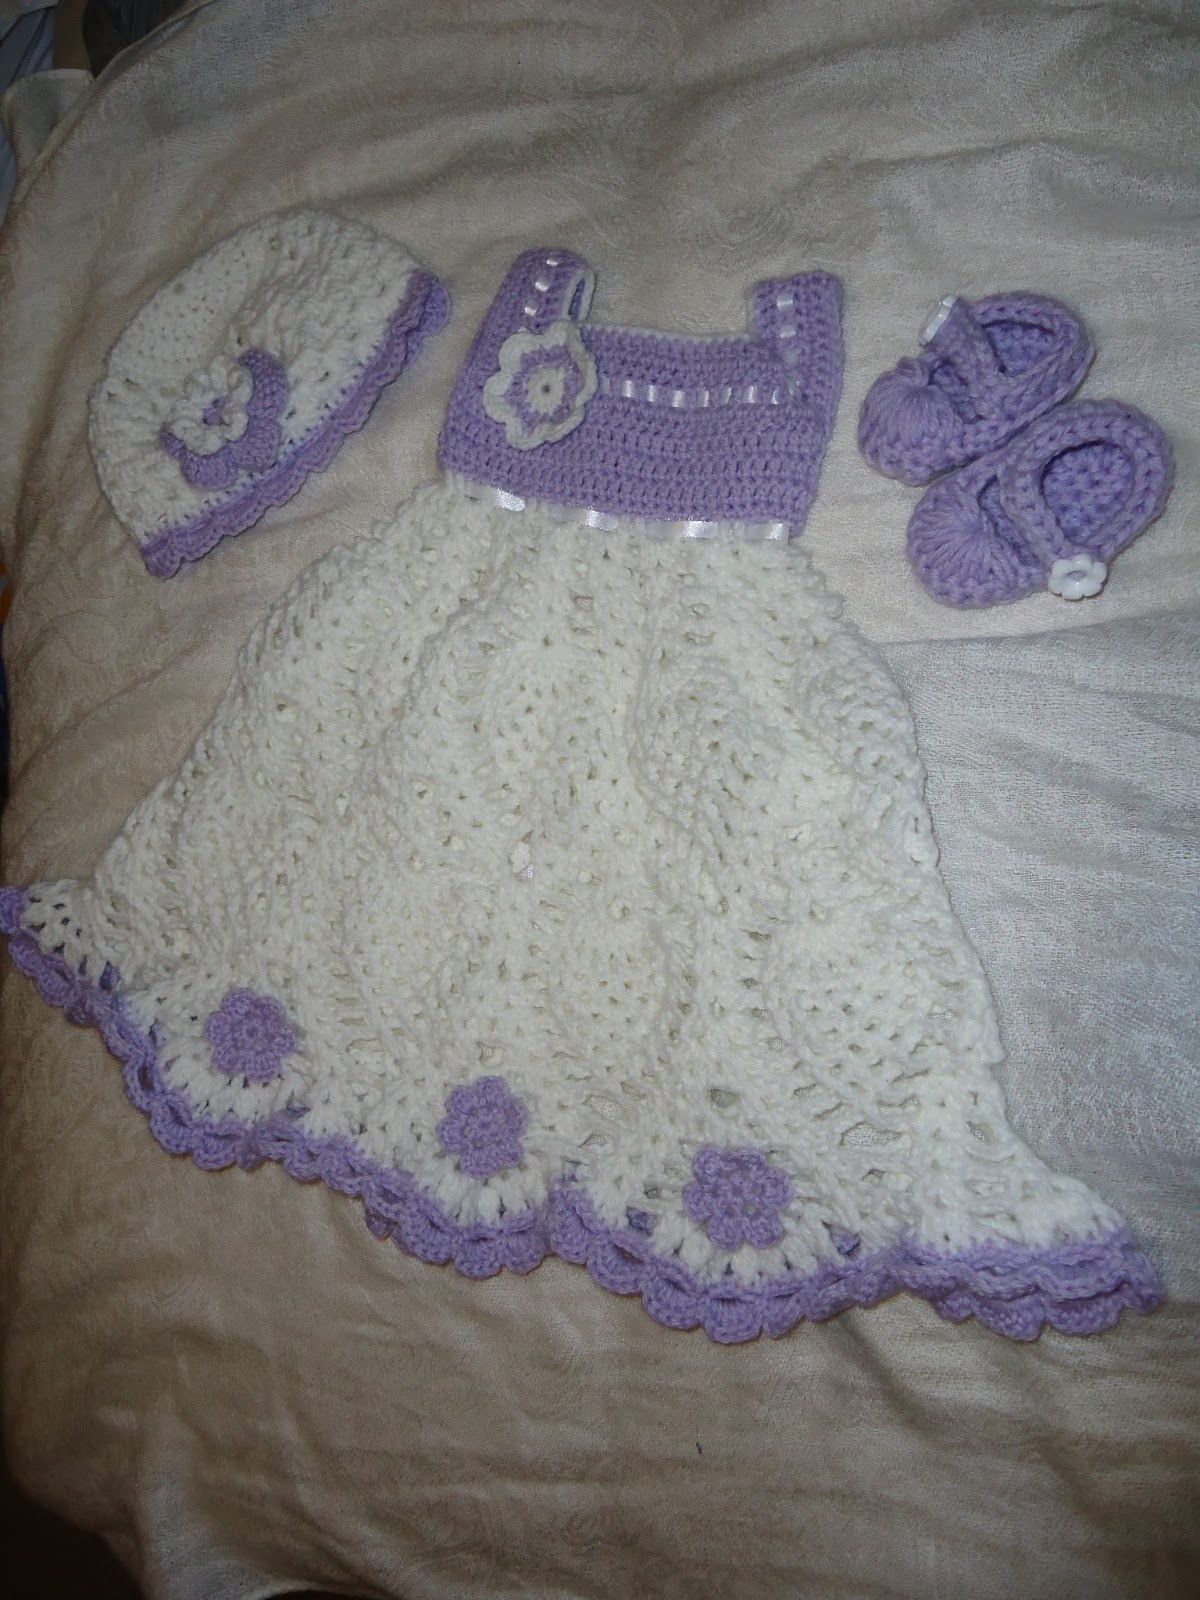 Crochetpedia my work newborn baby girl outfit dress hat and shoes